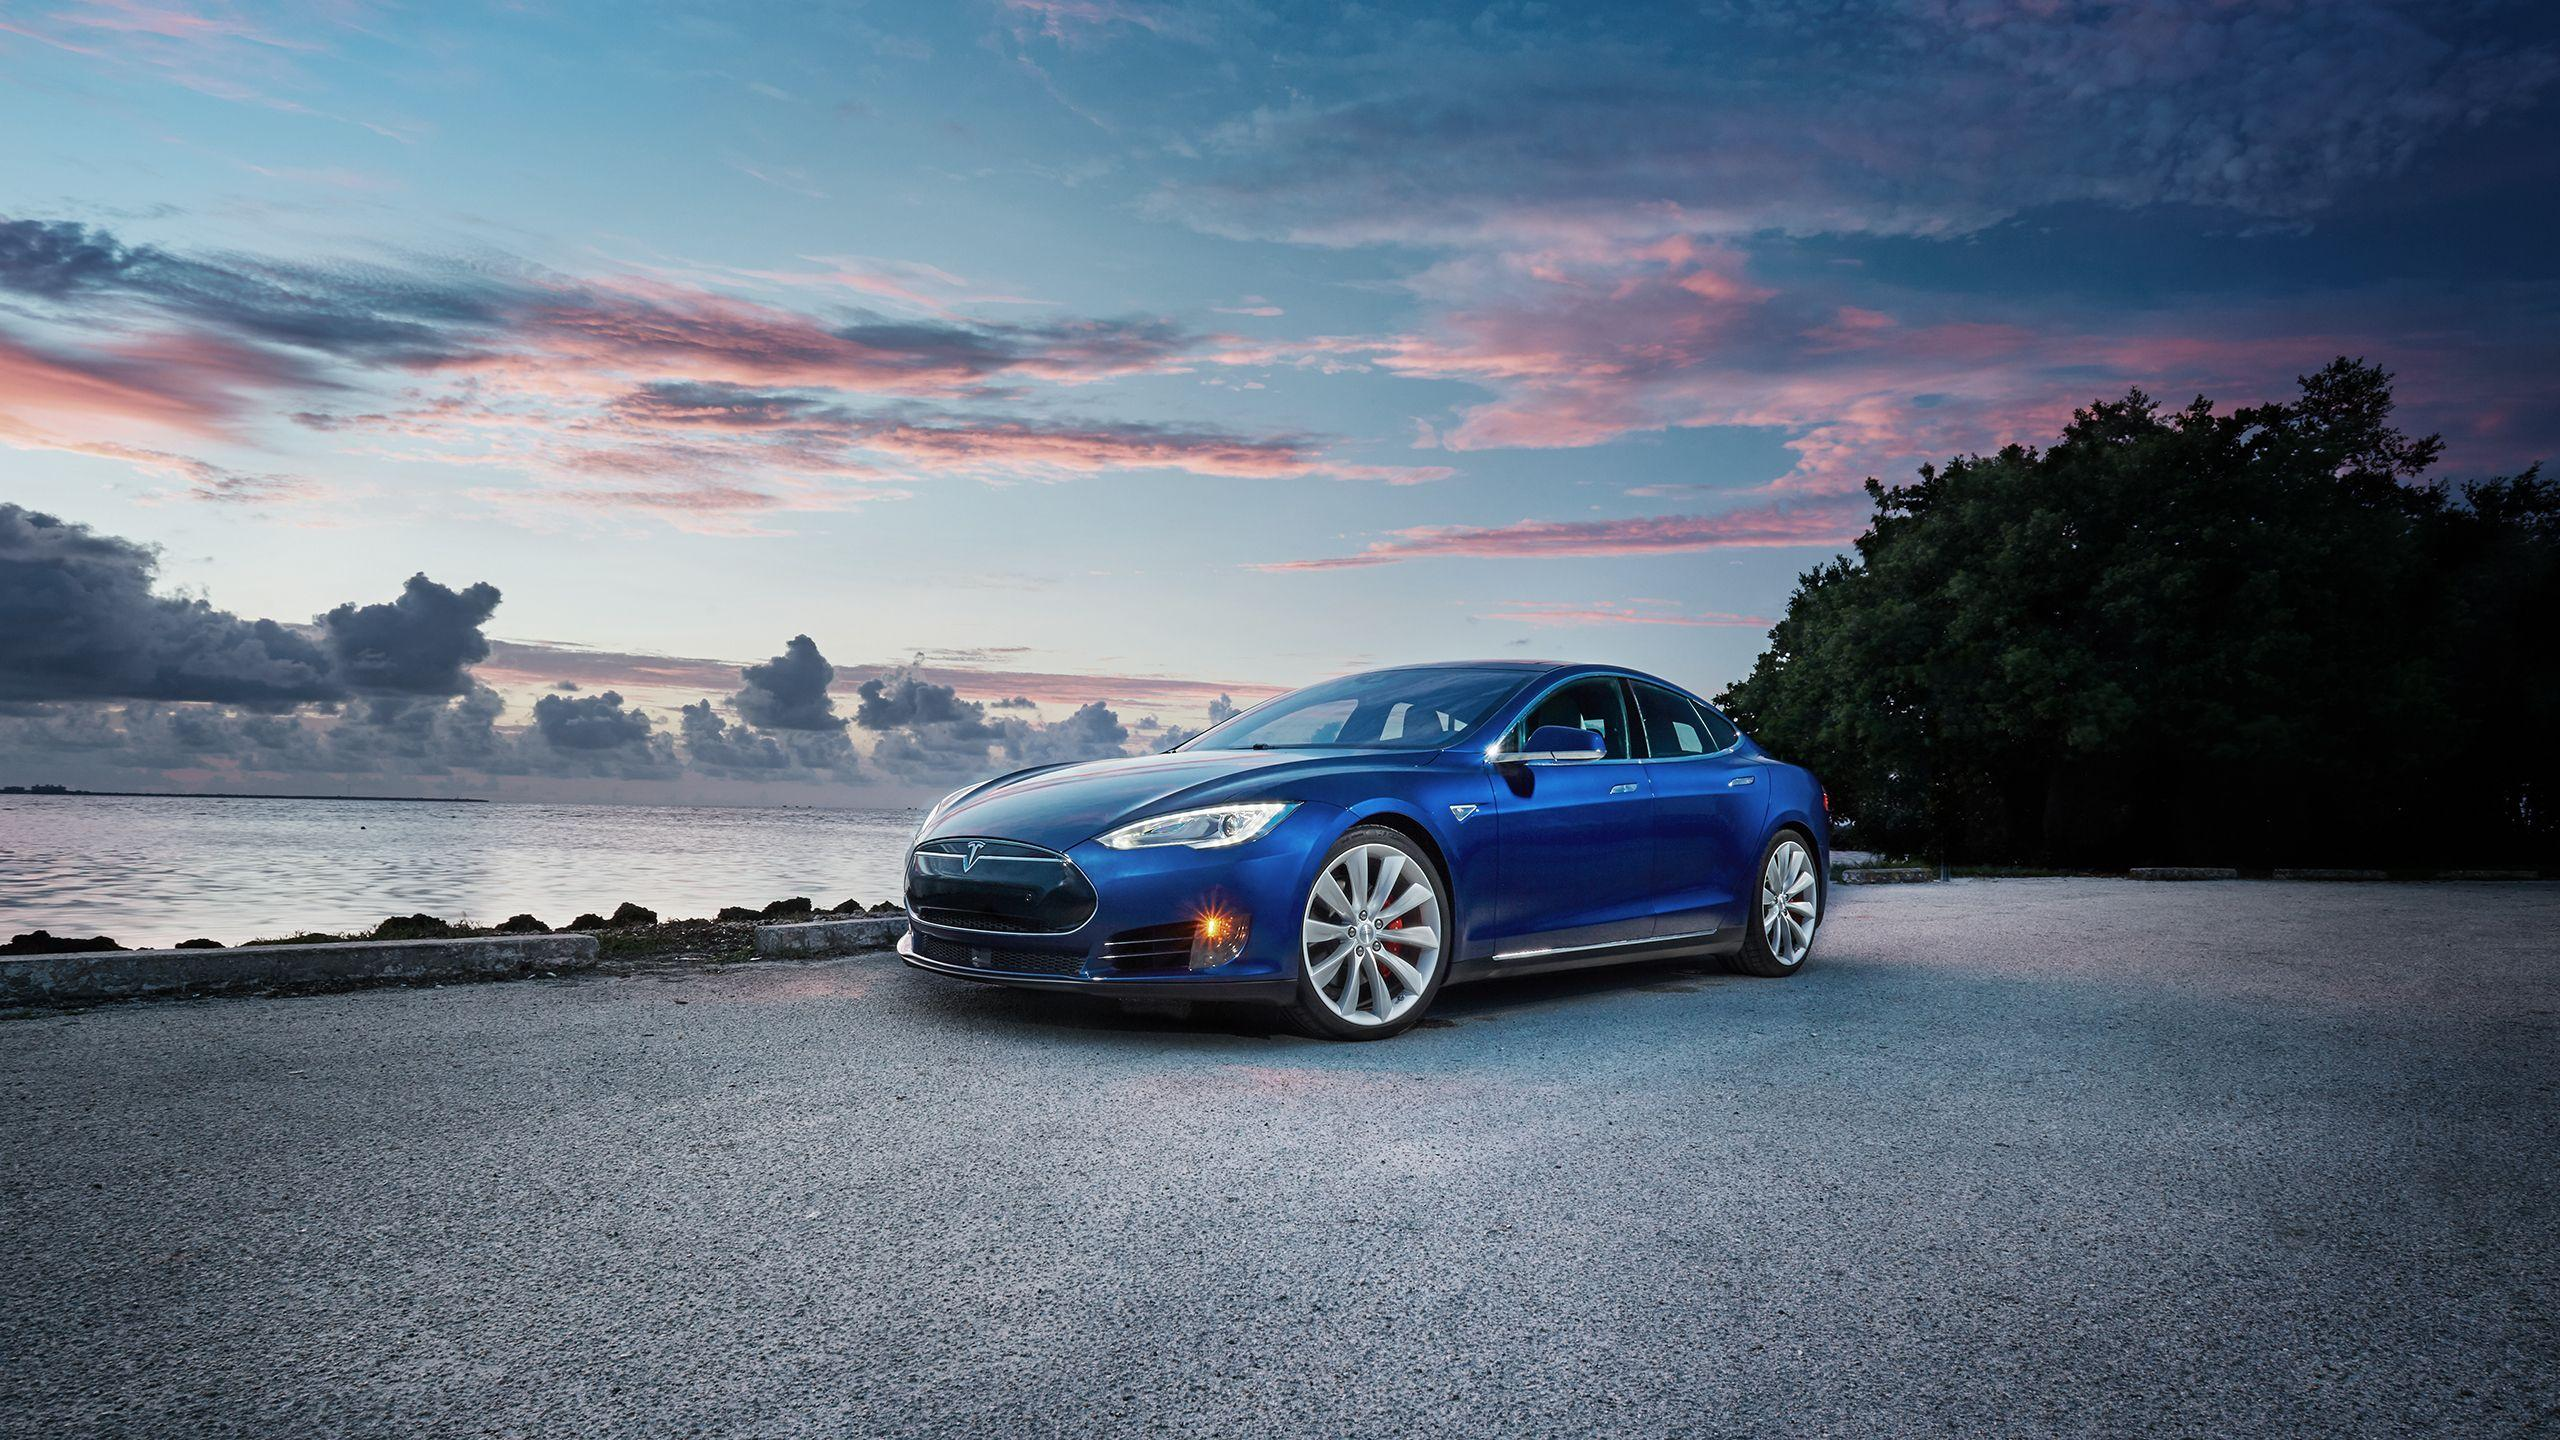 Blue Tesla Wallpapers 2560x1440